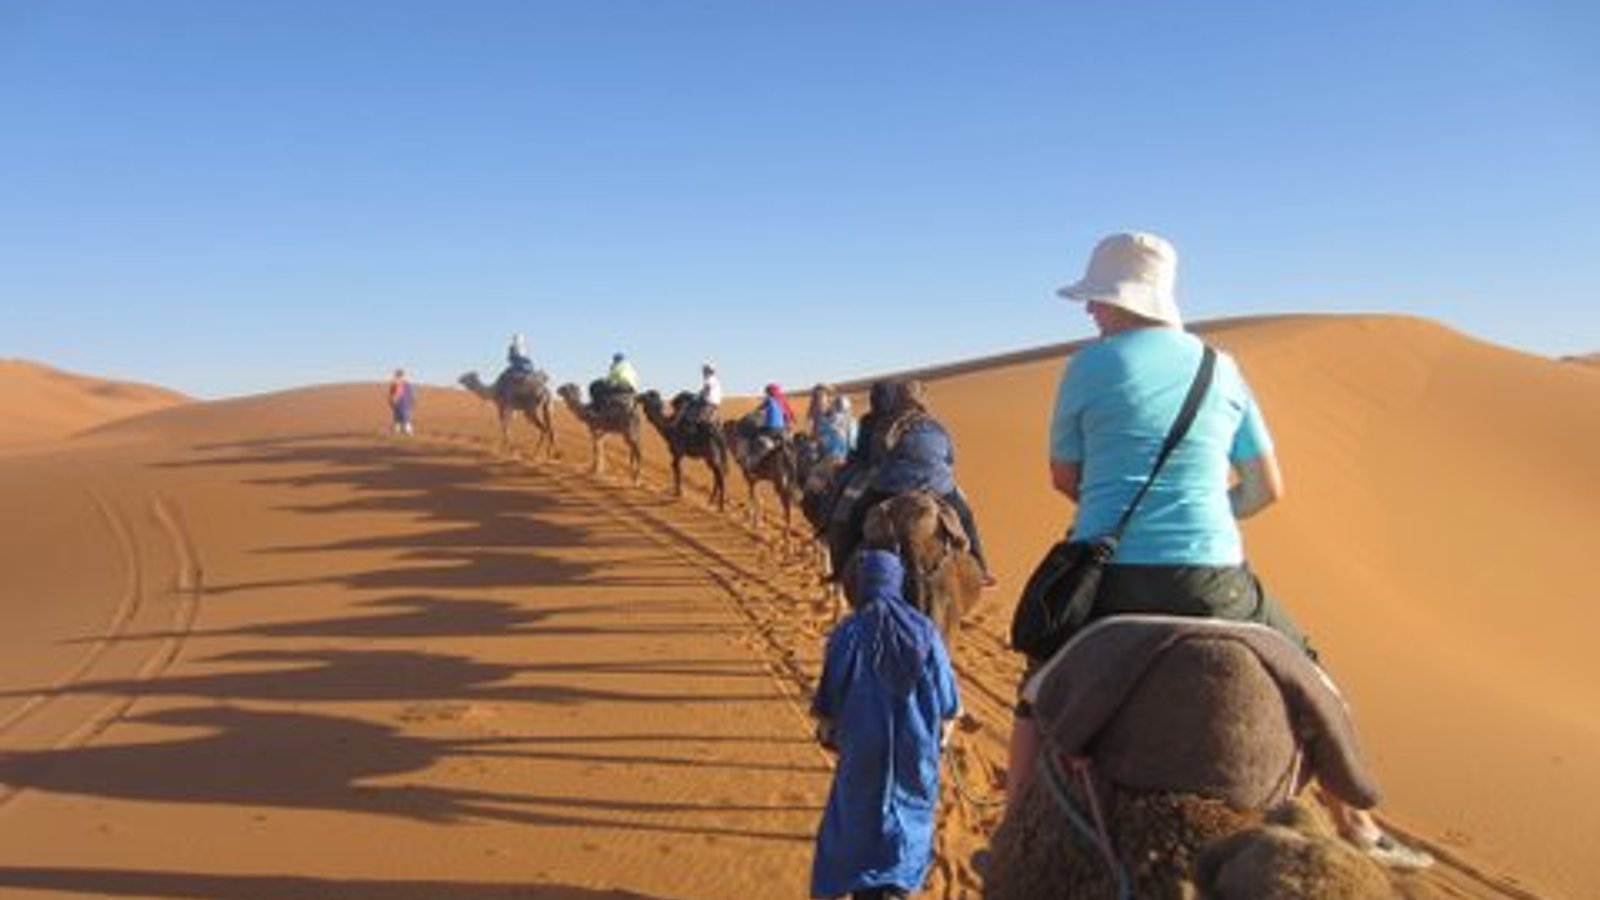 Morocco: Development and Human Wellbeing in an African Country